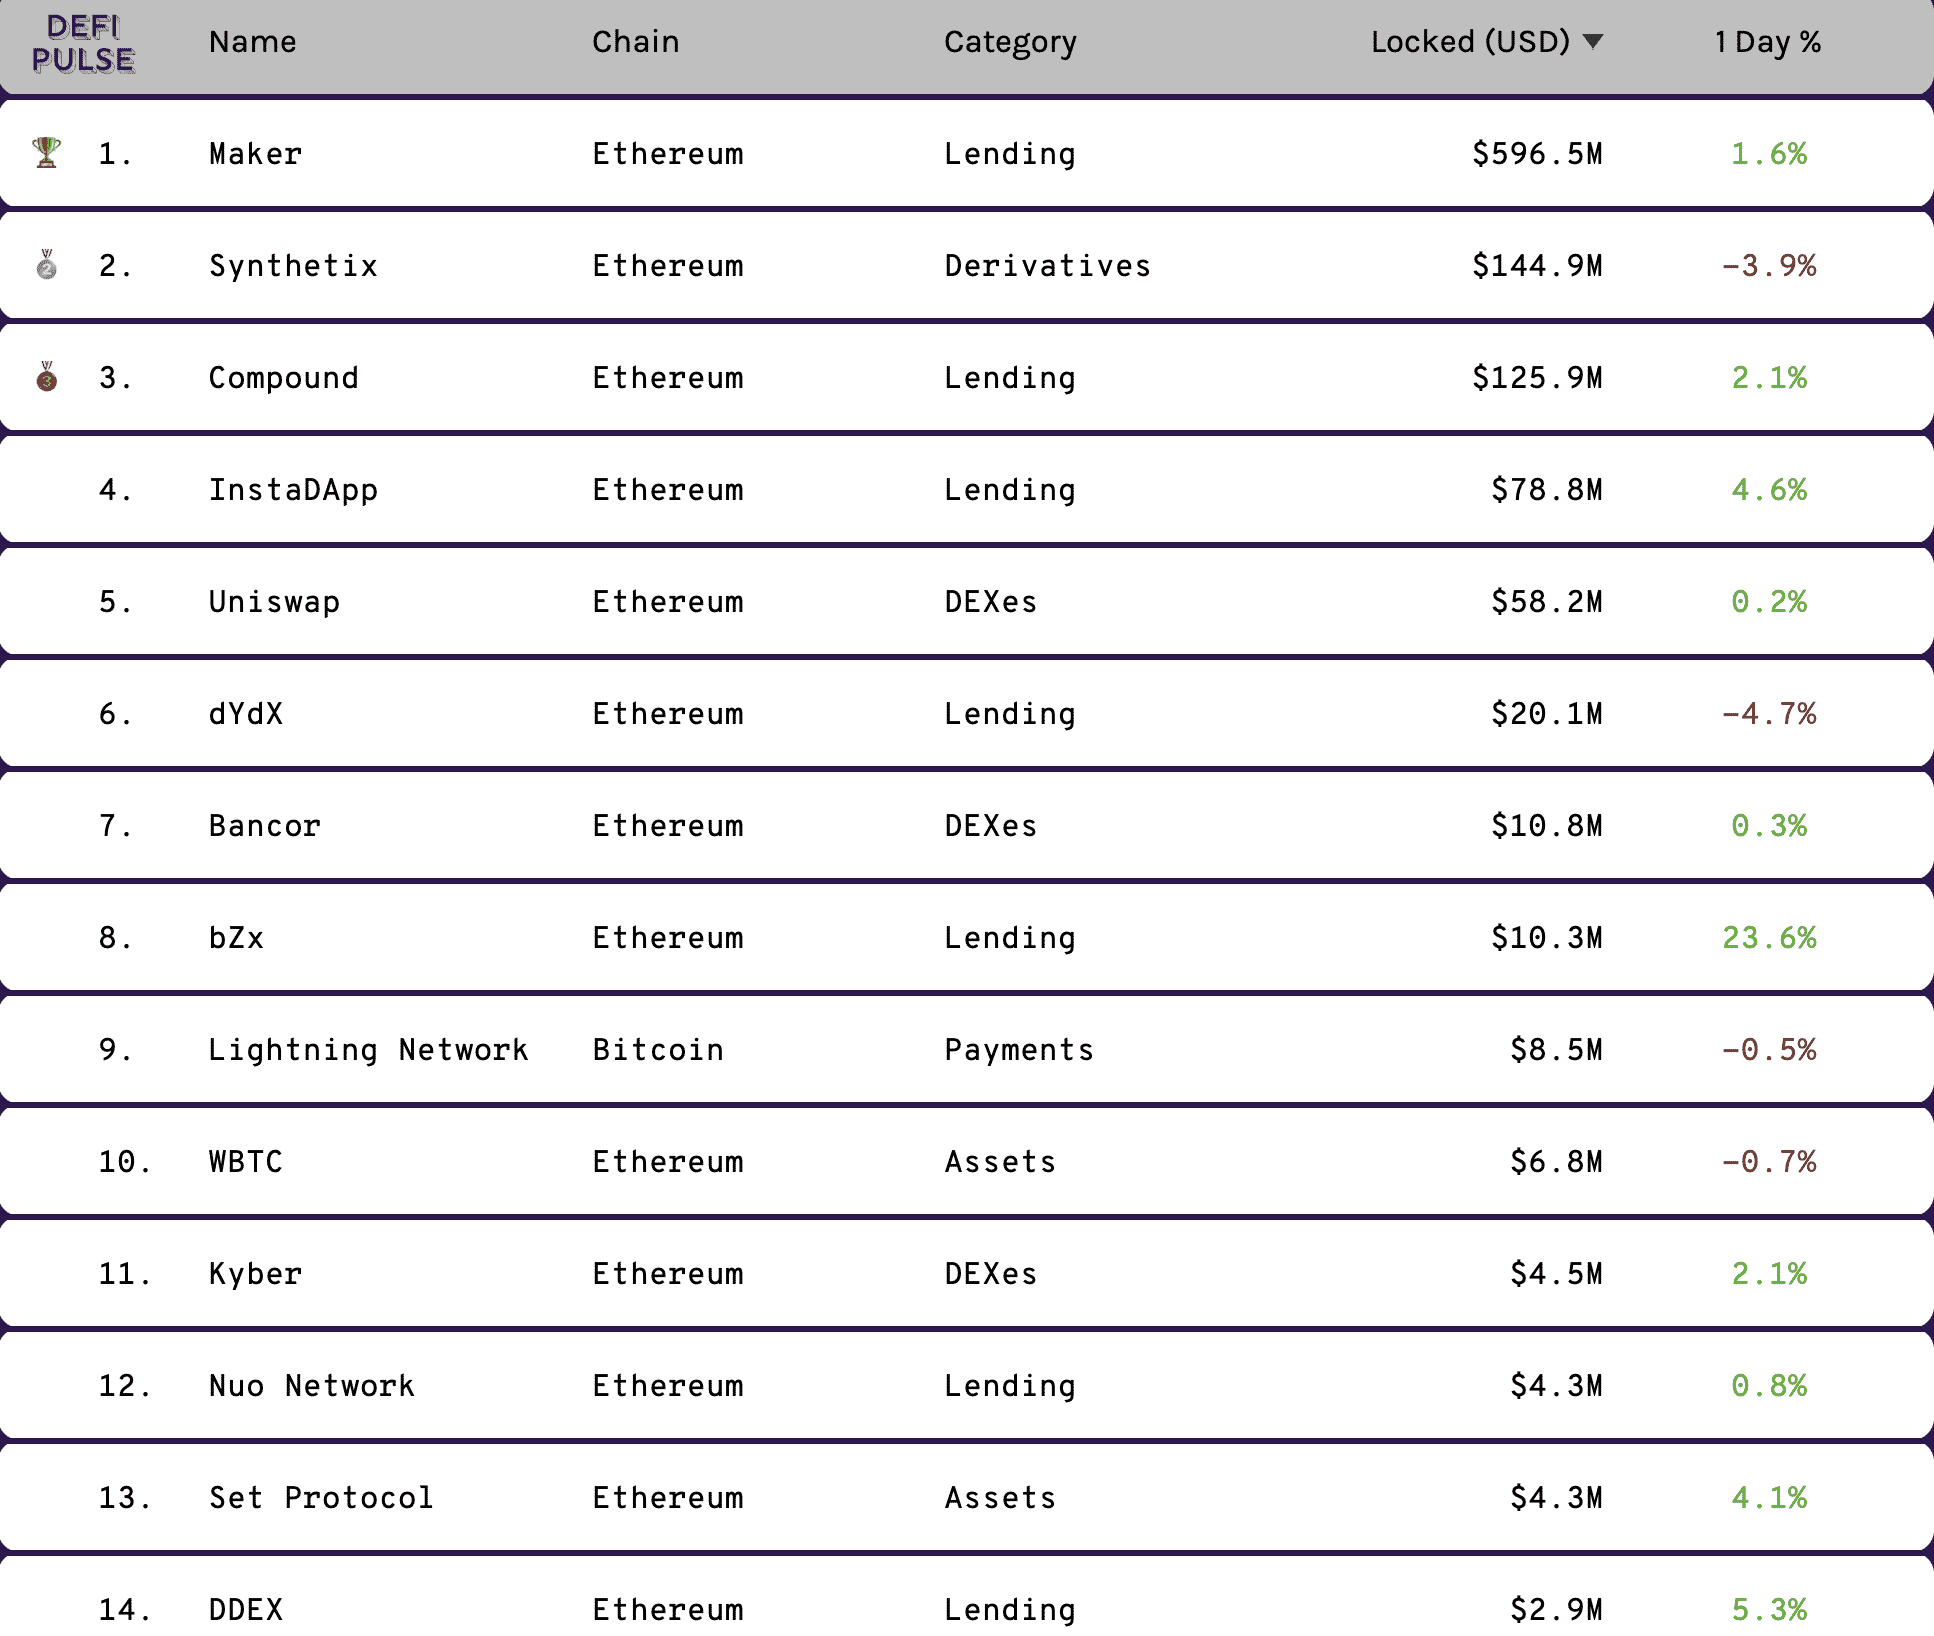 Top defi projects, Feb 2020